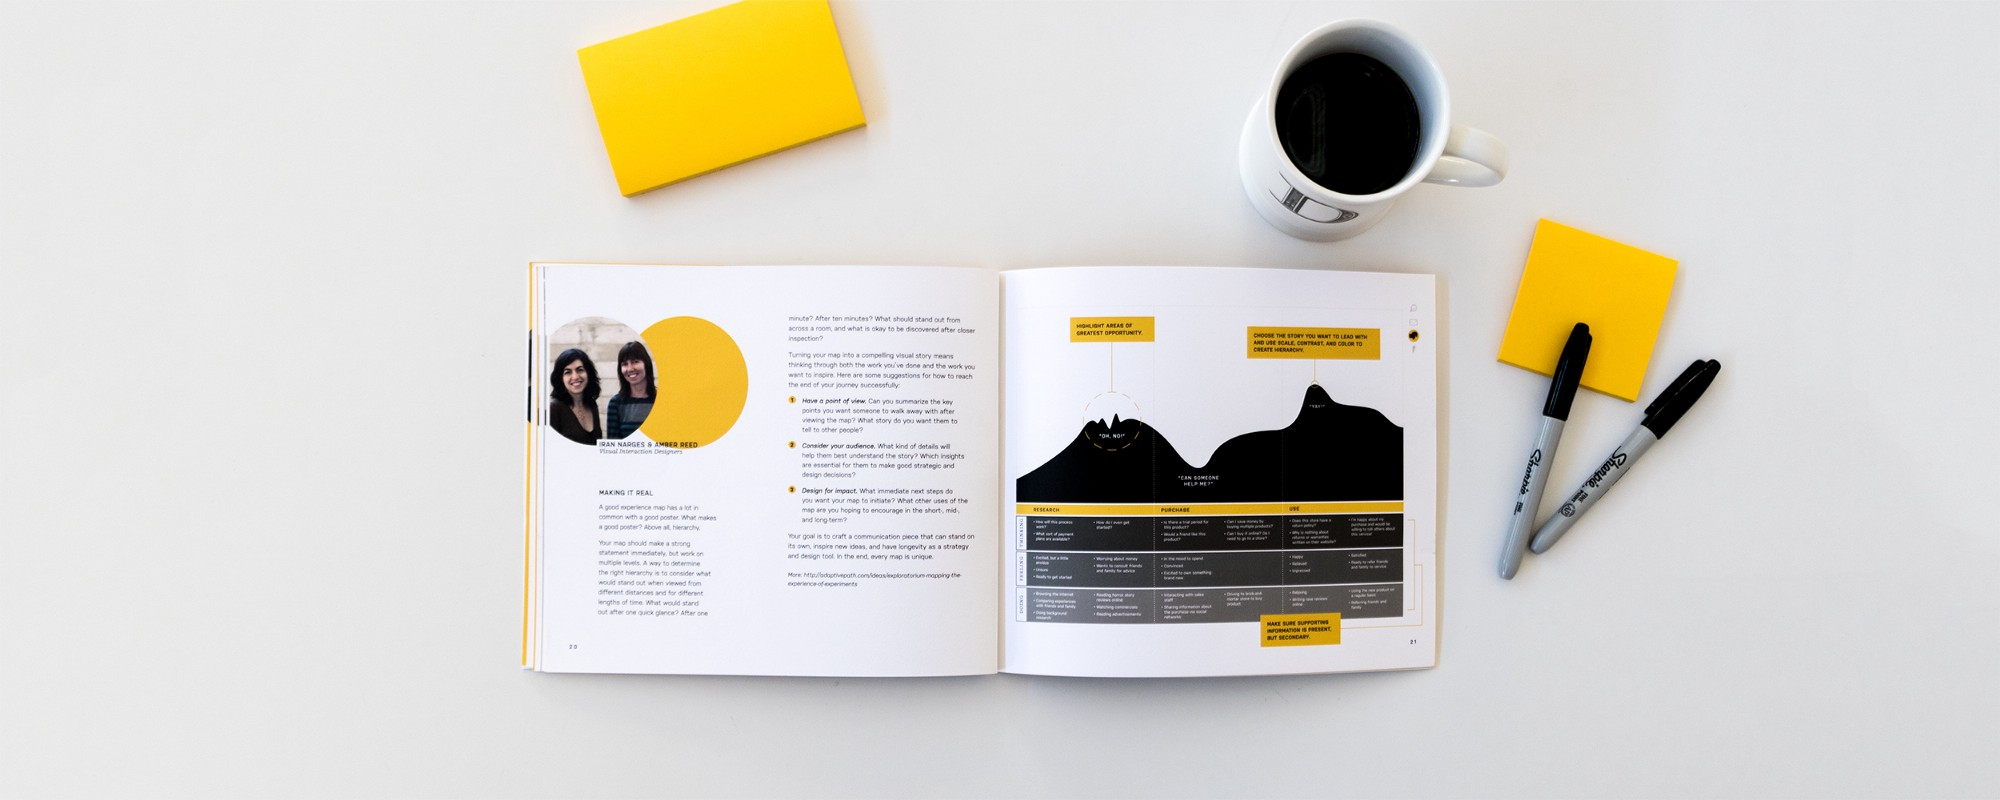 Download Our Guide to Experience Mapping     One Design Community     Medium Photo by Ece Ciper